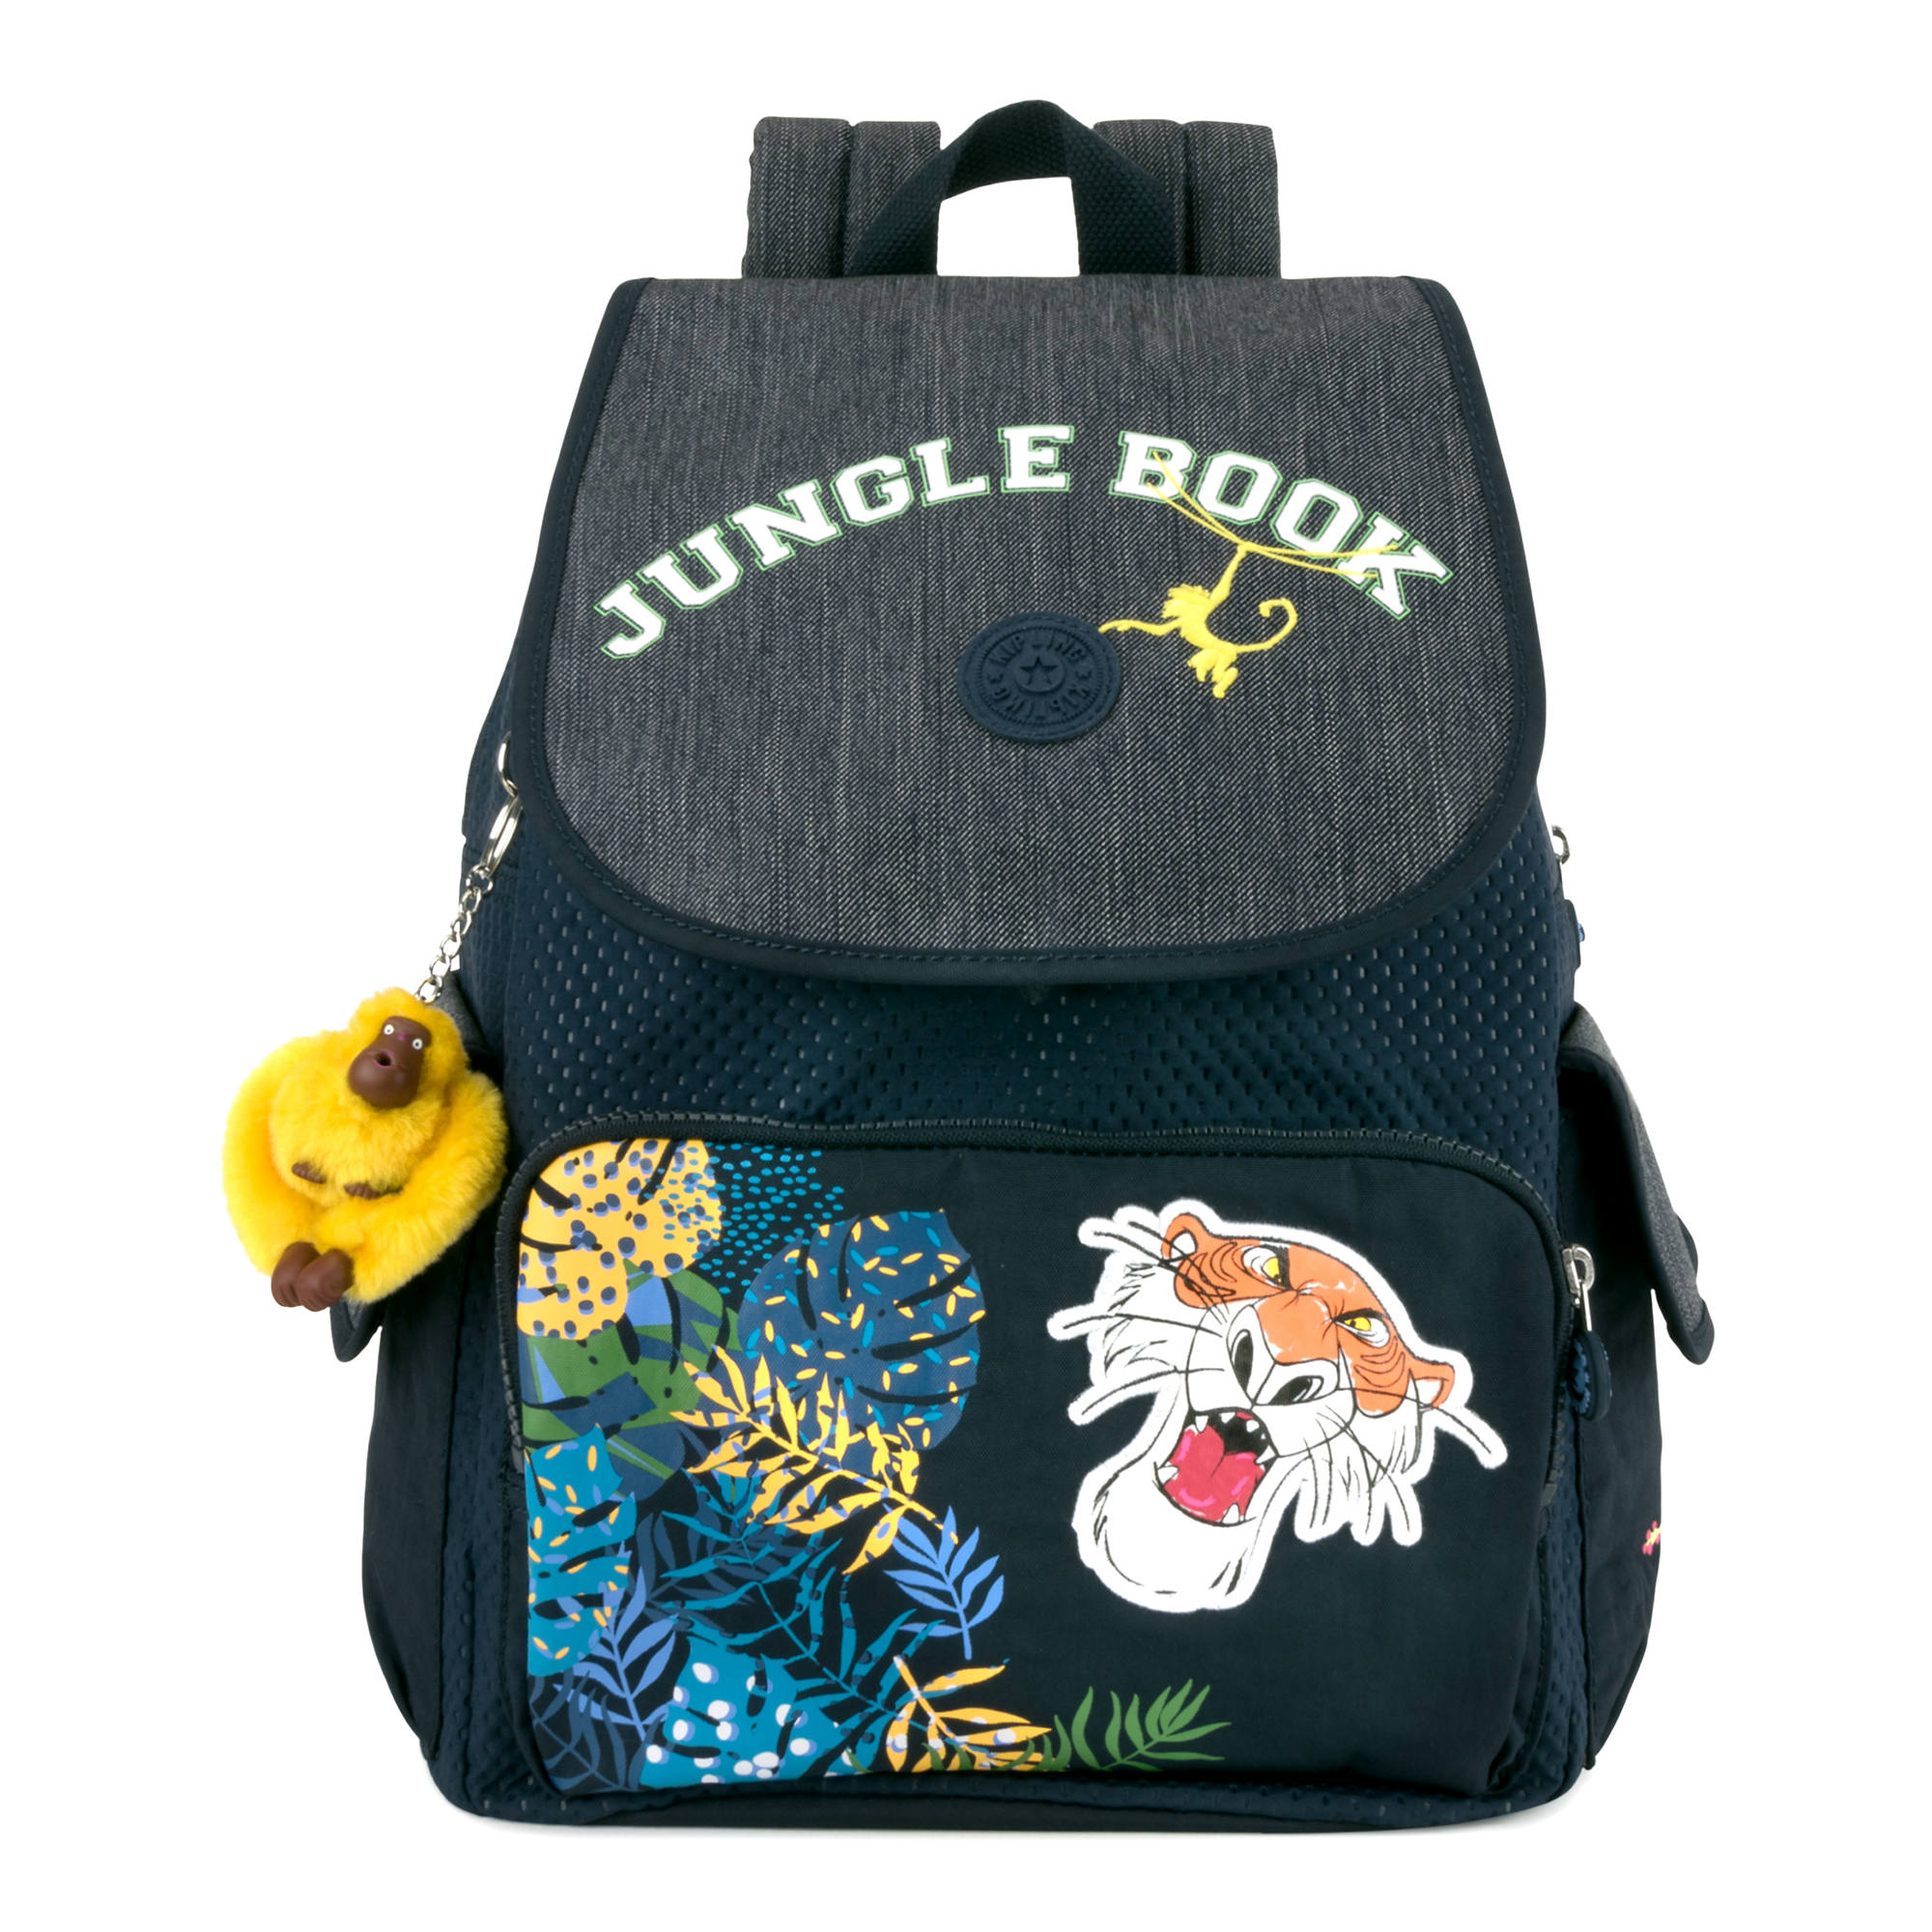 4259003f7fd0 Disney's Jungle Book City Pack Medium Backpack